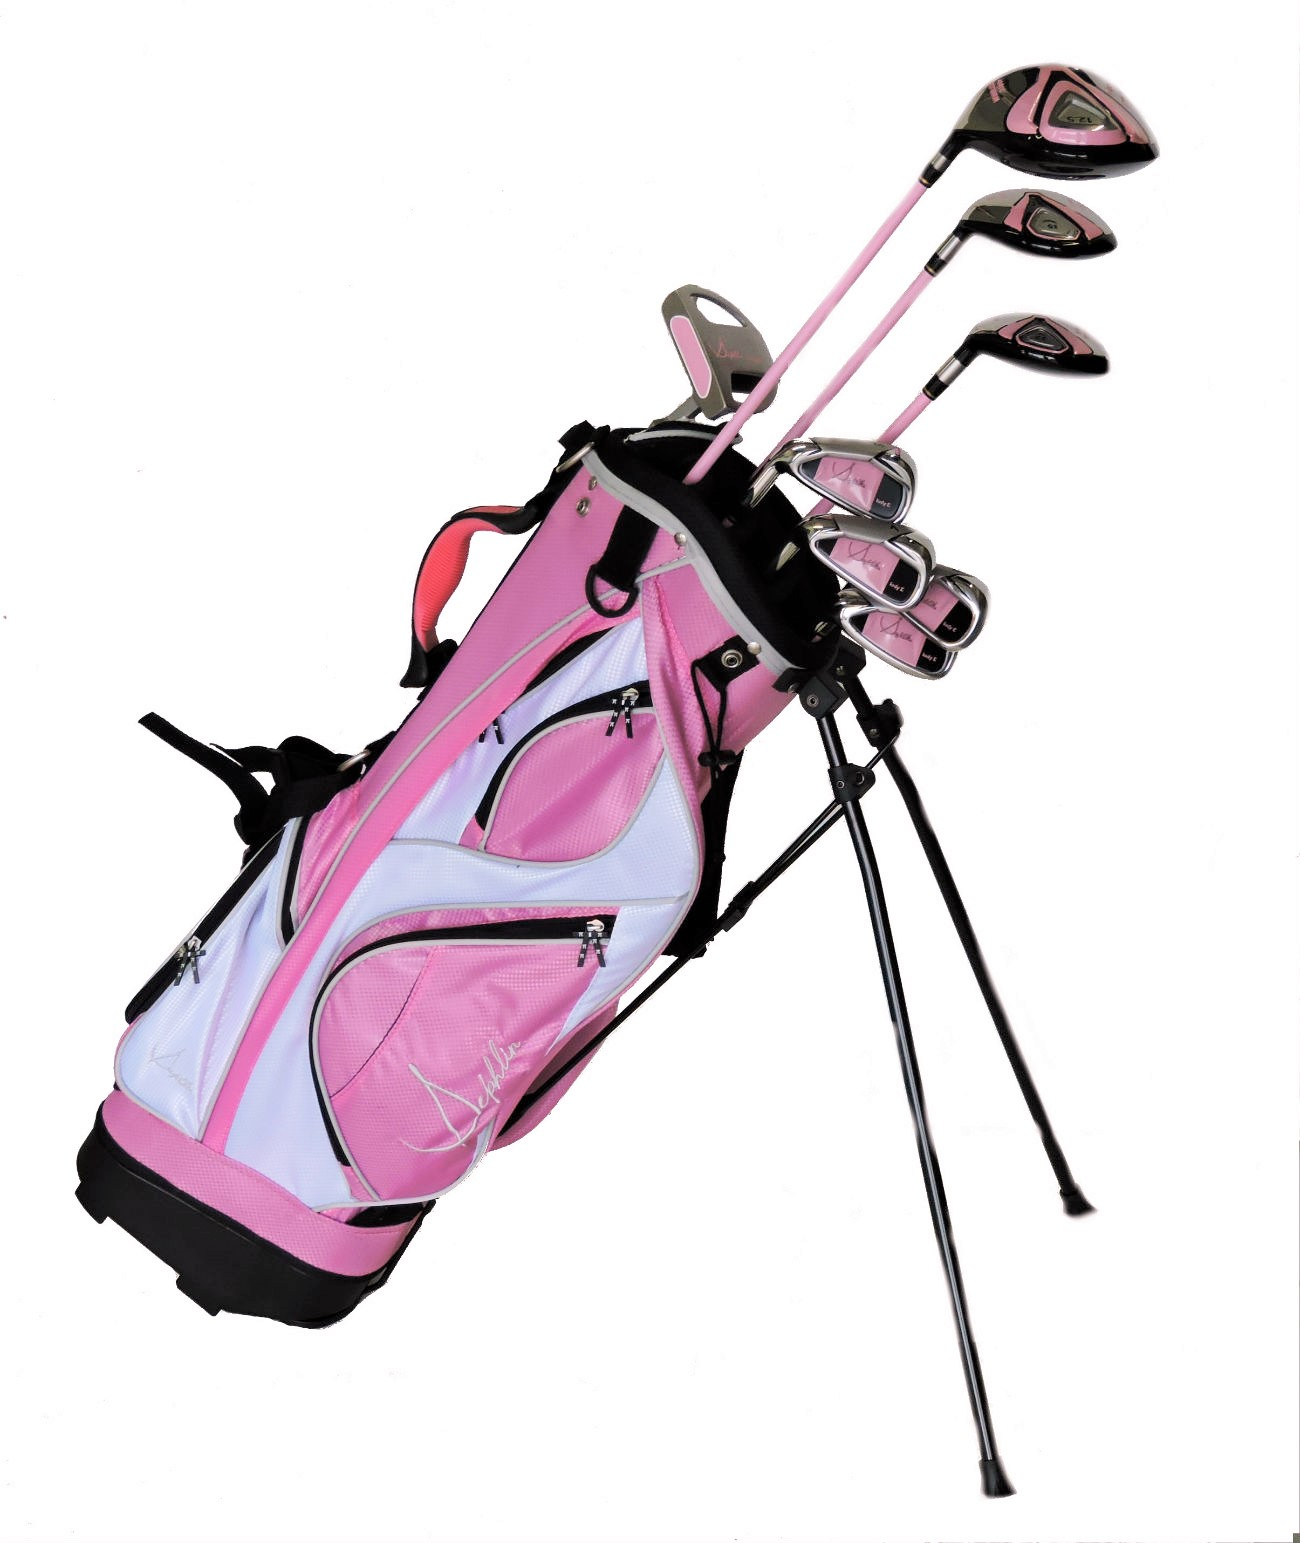 Sephlin - Lady Talia *8*  Pcs Golf Club Set and Golf Bag Ages 11 - 14 Lh